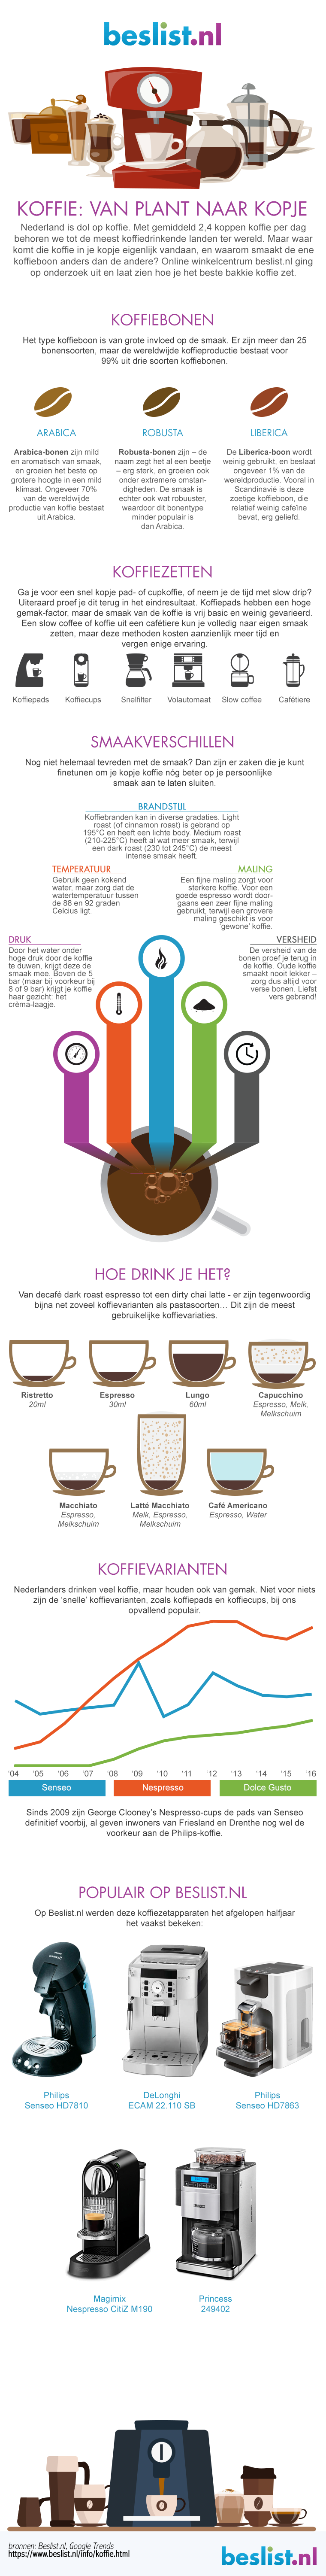 Infographic koffie